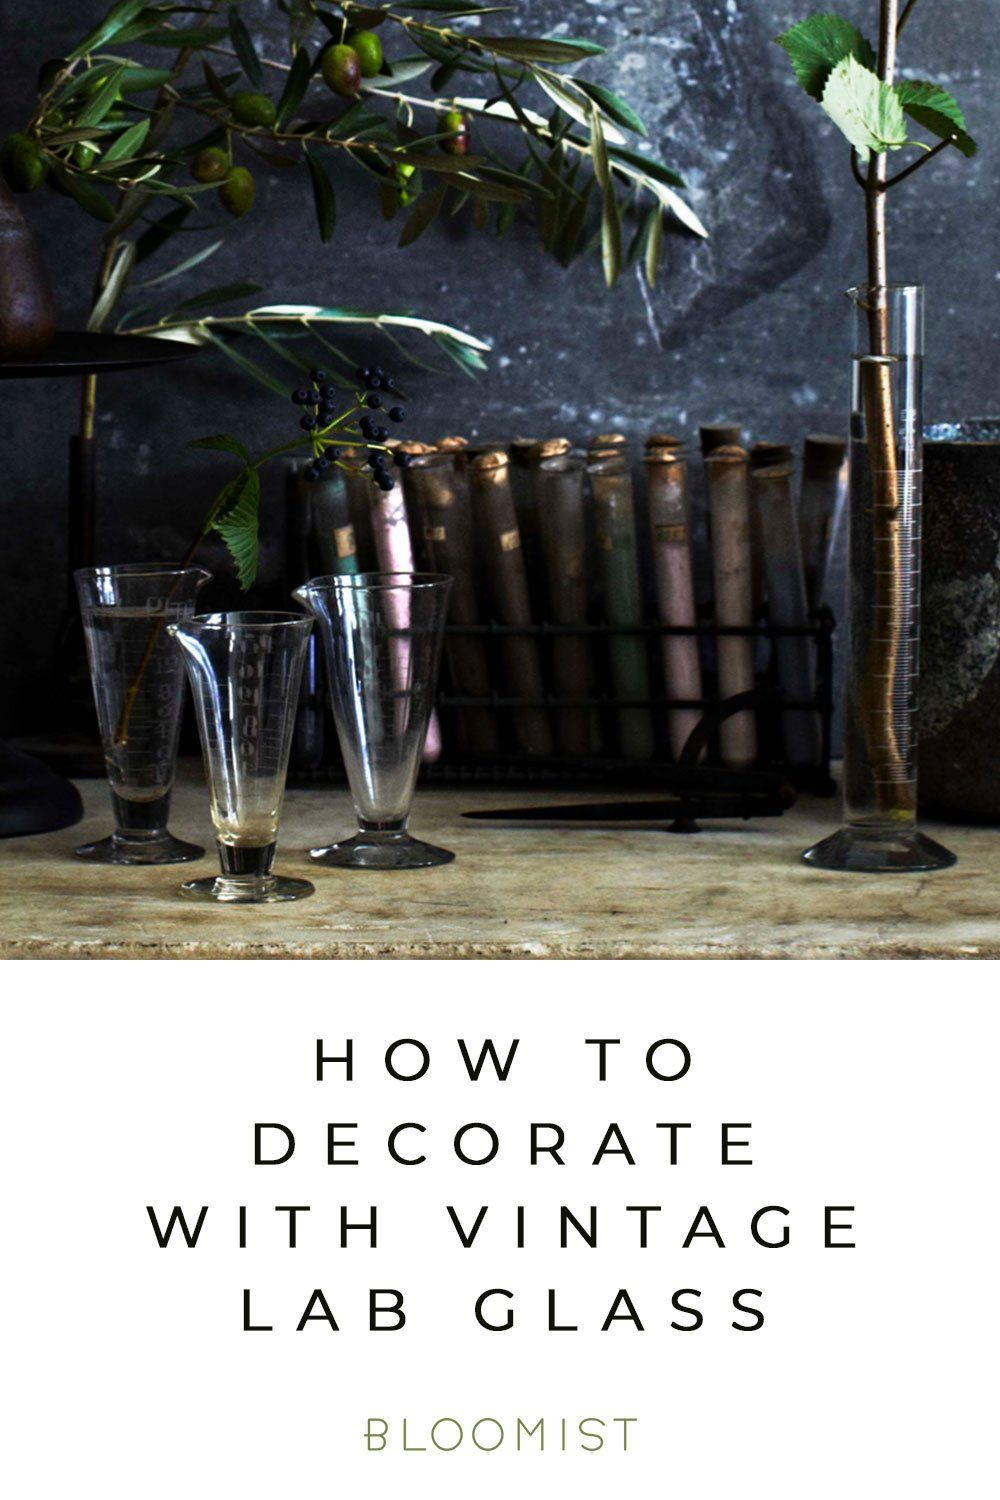 How To Experiment With Vintage Lab Glass With Images Bedroom Plants Glass Glass Cylinder Vases